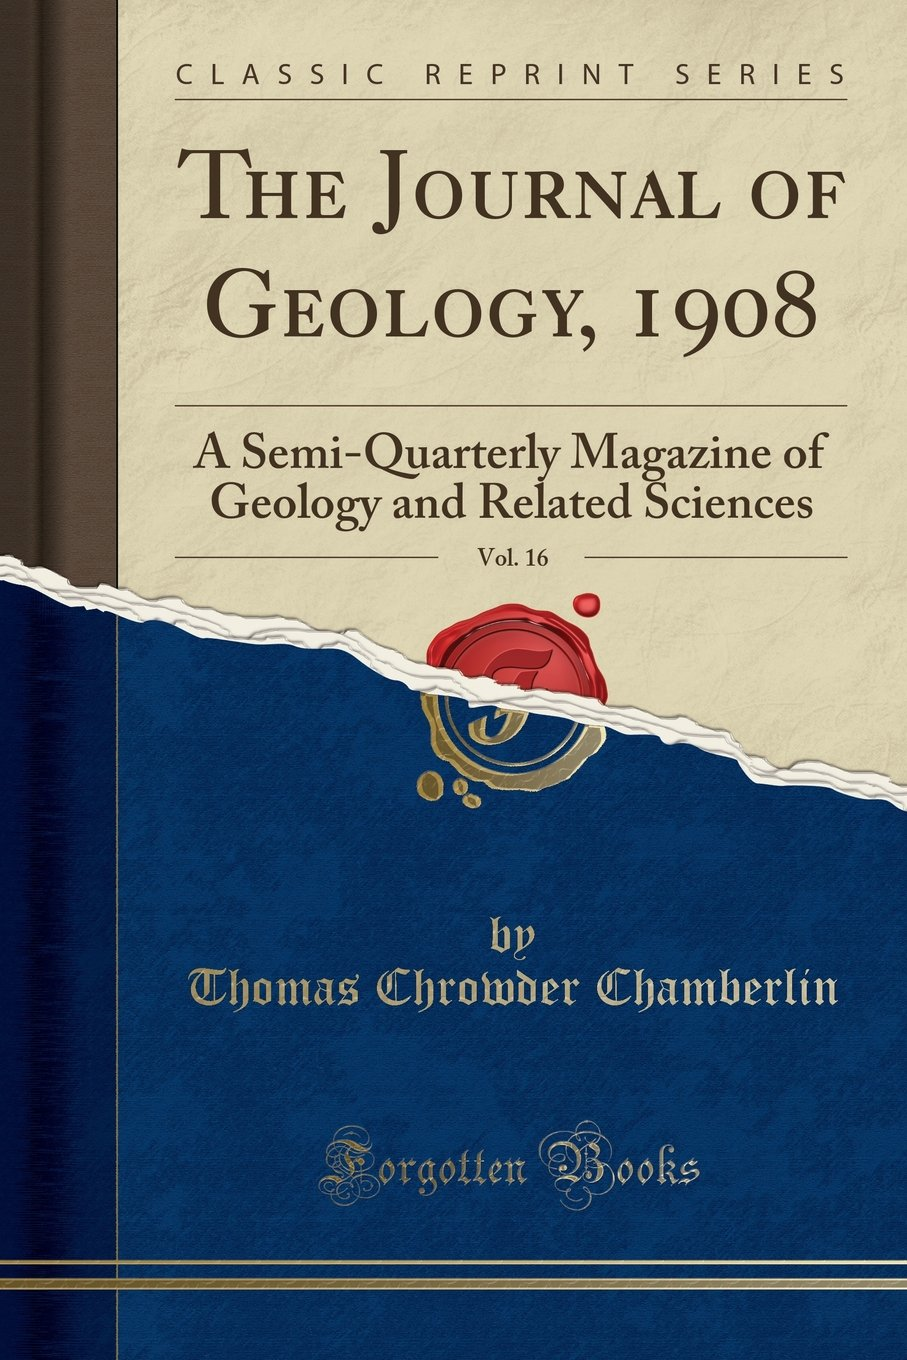 The Journal of Geology, 1908, Vol. 16: A Semi-Quarterly Magazine of Geology and Related Sciences (Classic Reprint) pdf epub